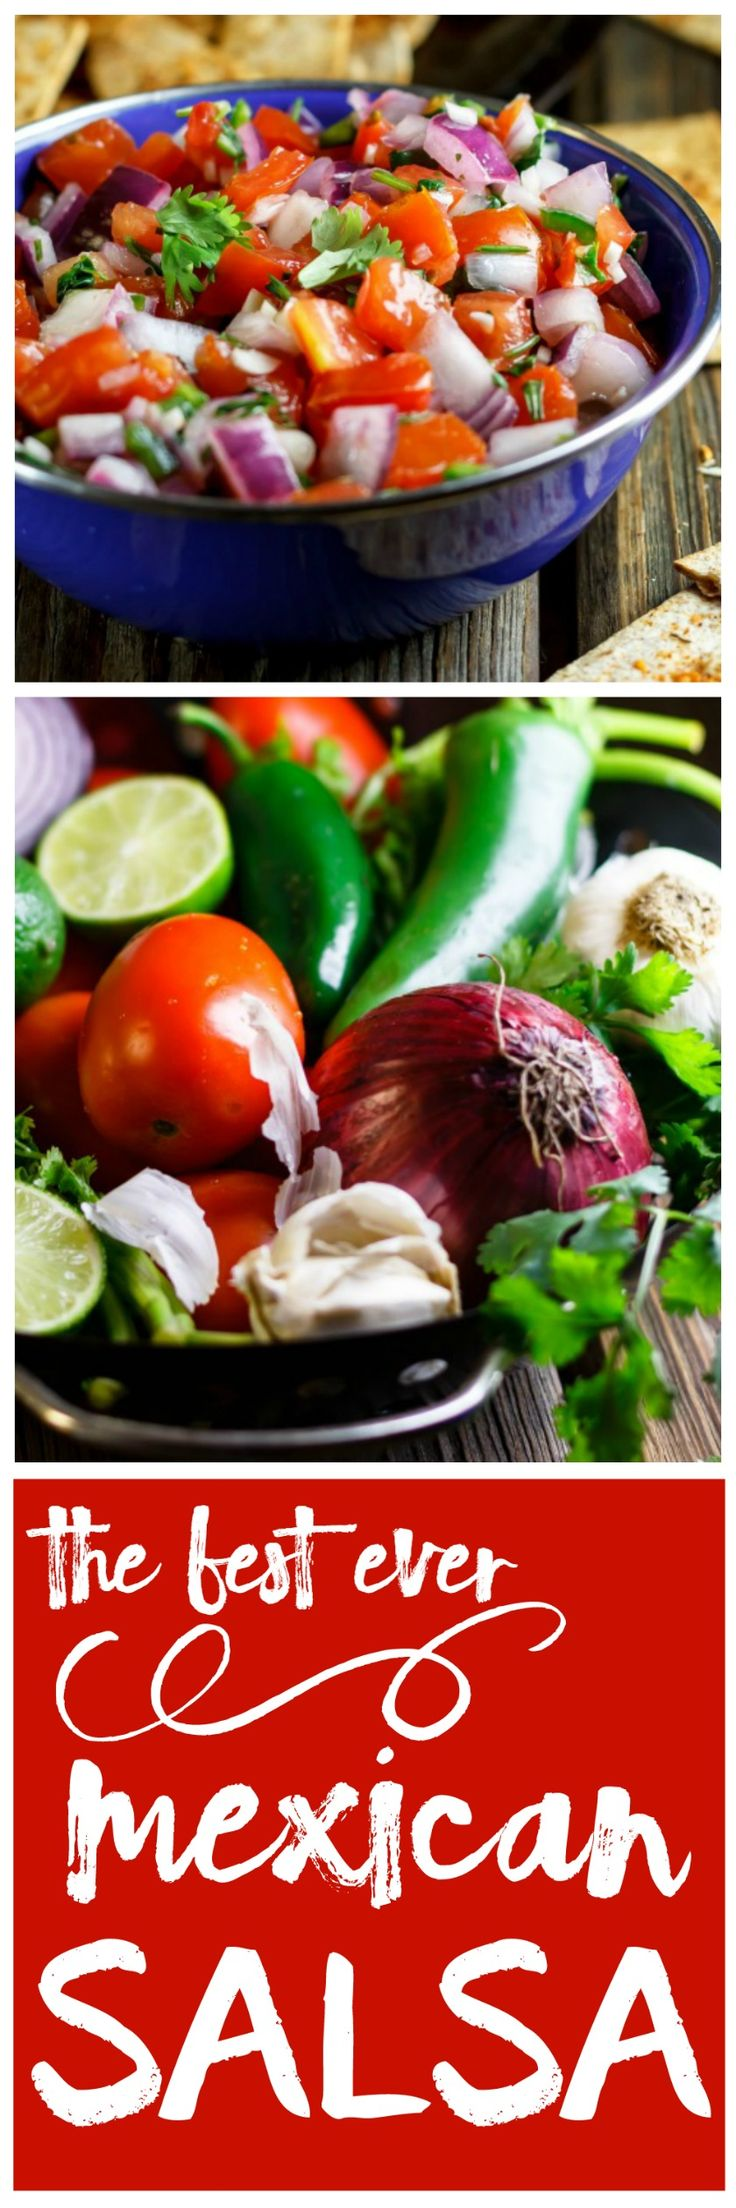 Gin's Authentic Mexican Salsa Recipe- the ONLY salsa recipe you need. Love love love!